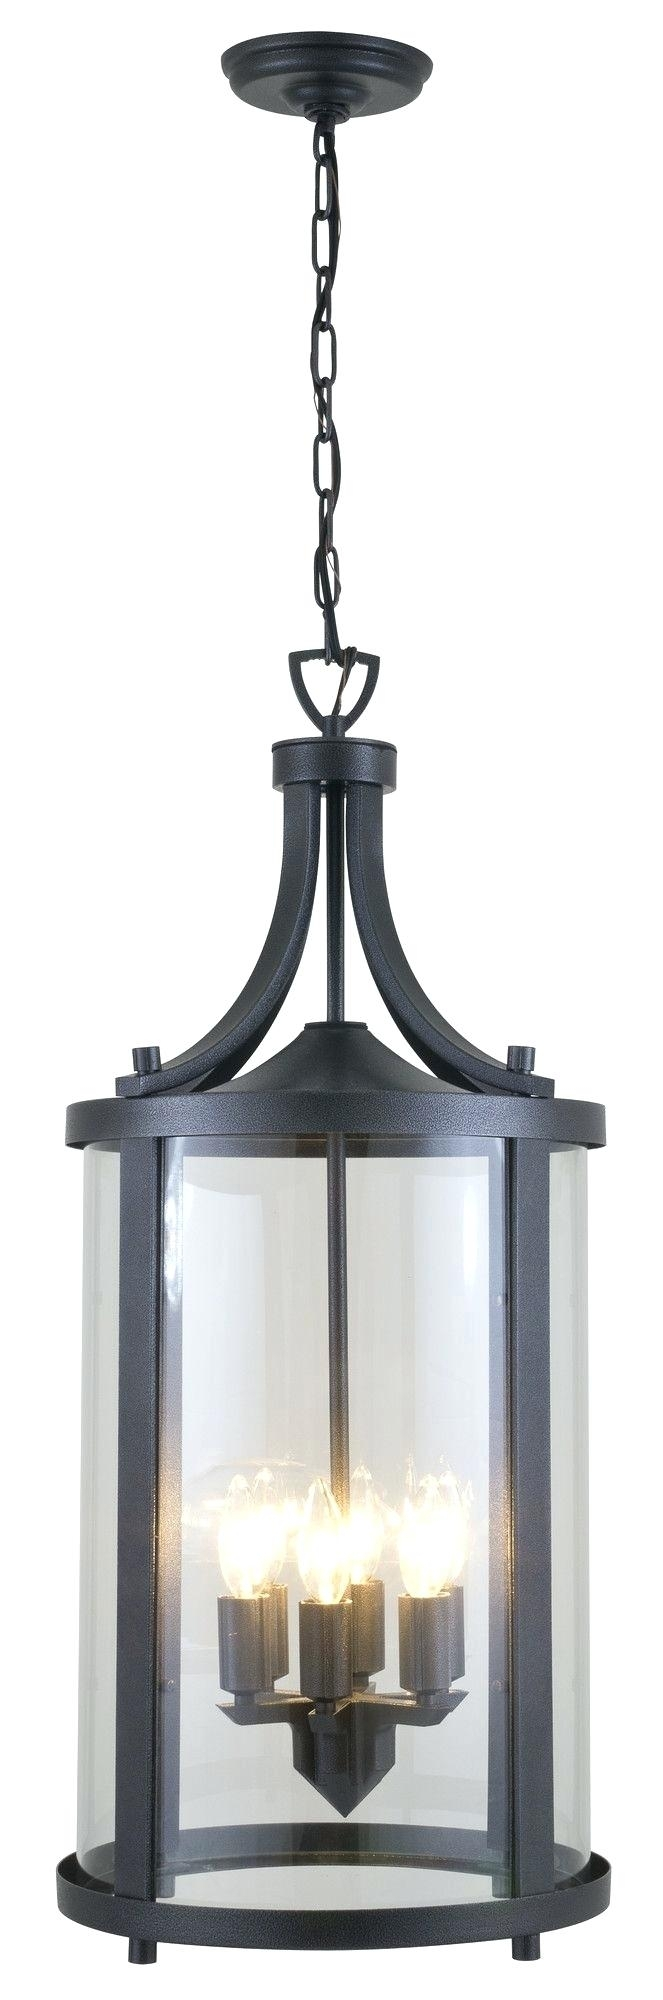 Outdoor Hanging Lanterns Candle Uk For Patio – Biophilessurf With Solar Powered Outdoor Hanging Lanterns (#9 of 15)